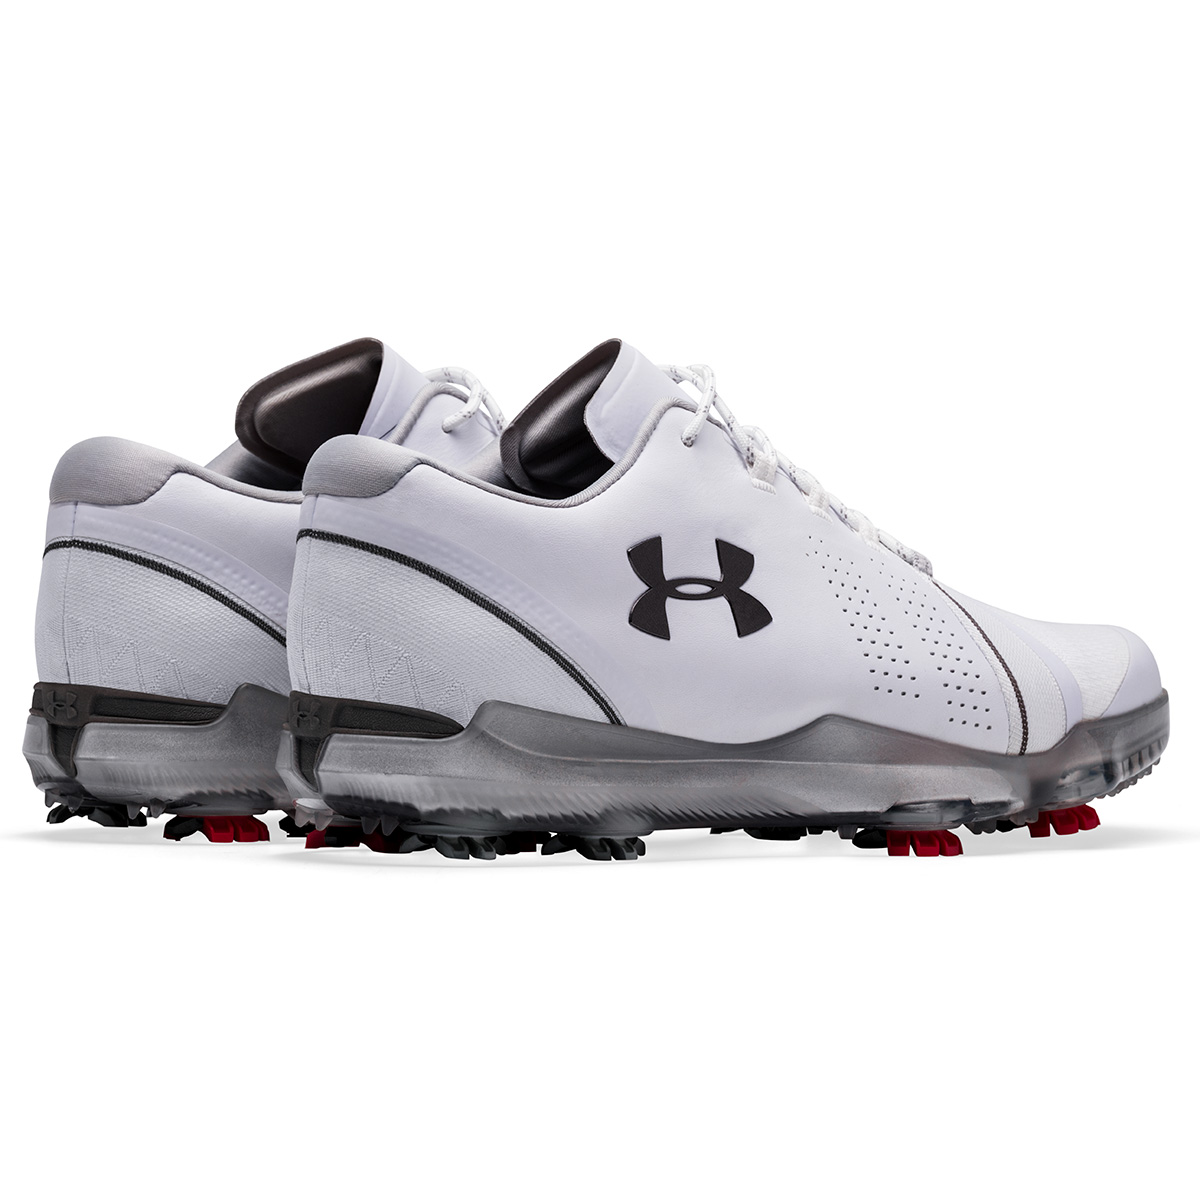 b7ceb76bb15e02 Under Armour Spieth 3 Shoes from american golf